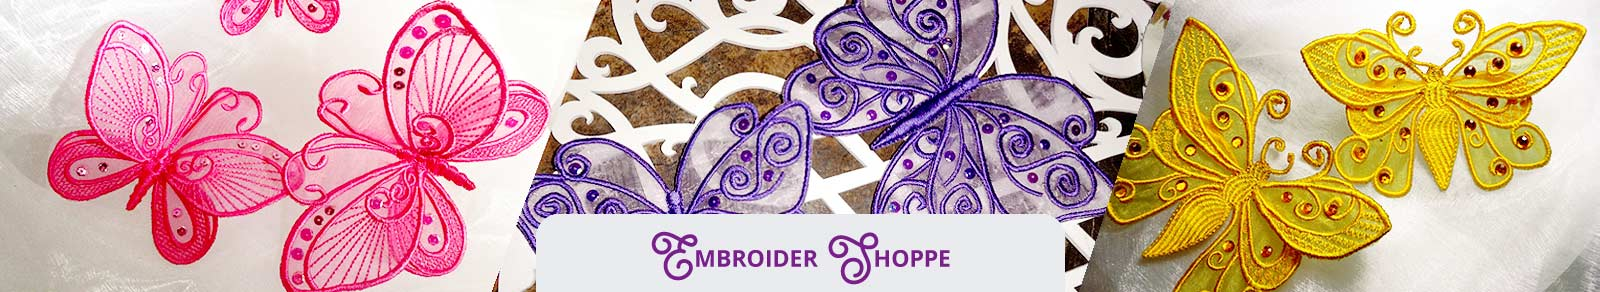 embroider shoppe